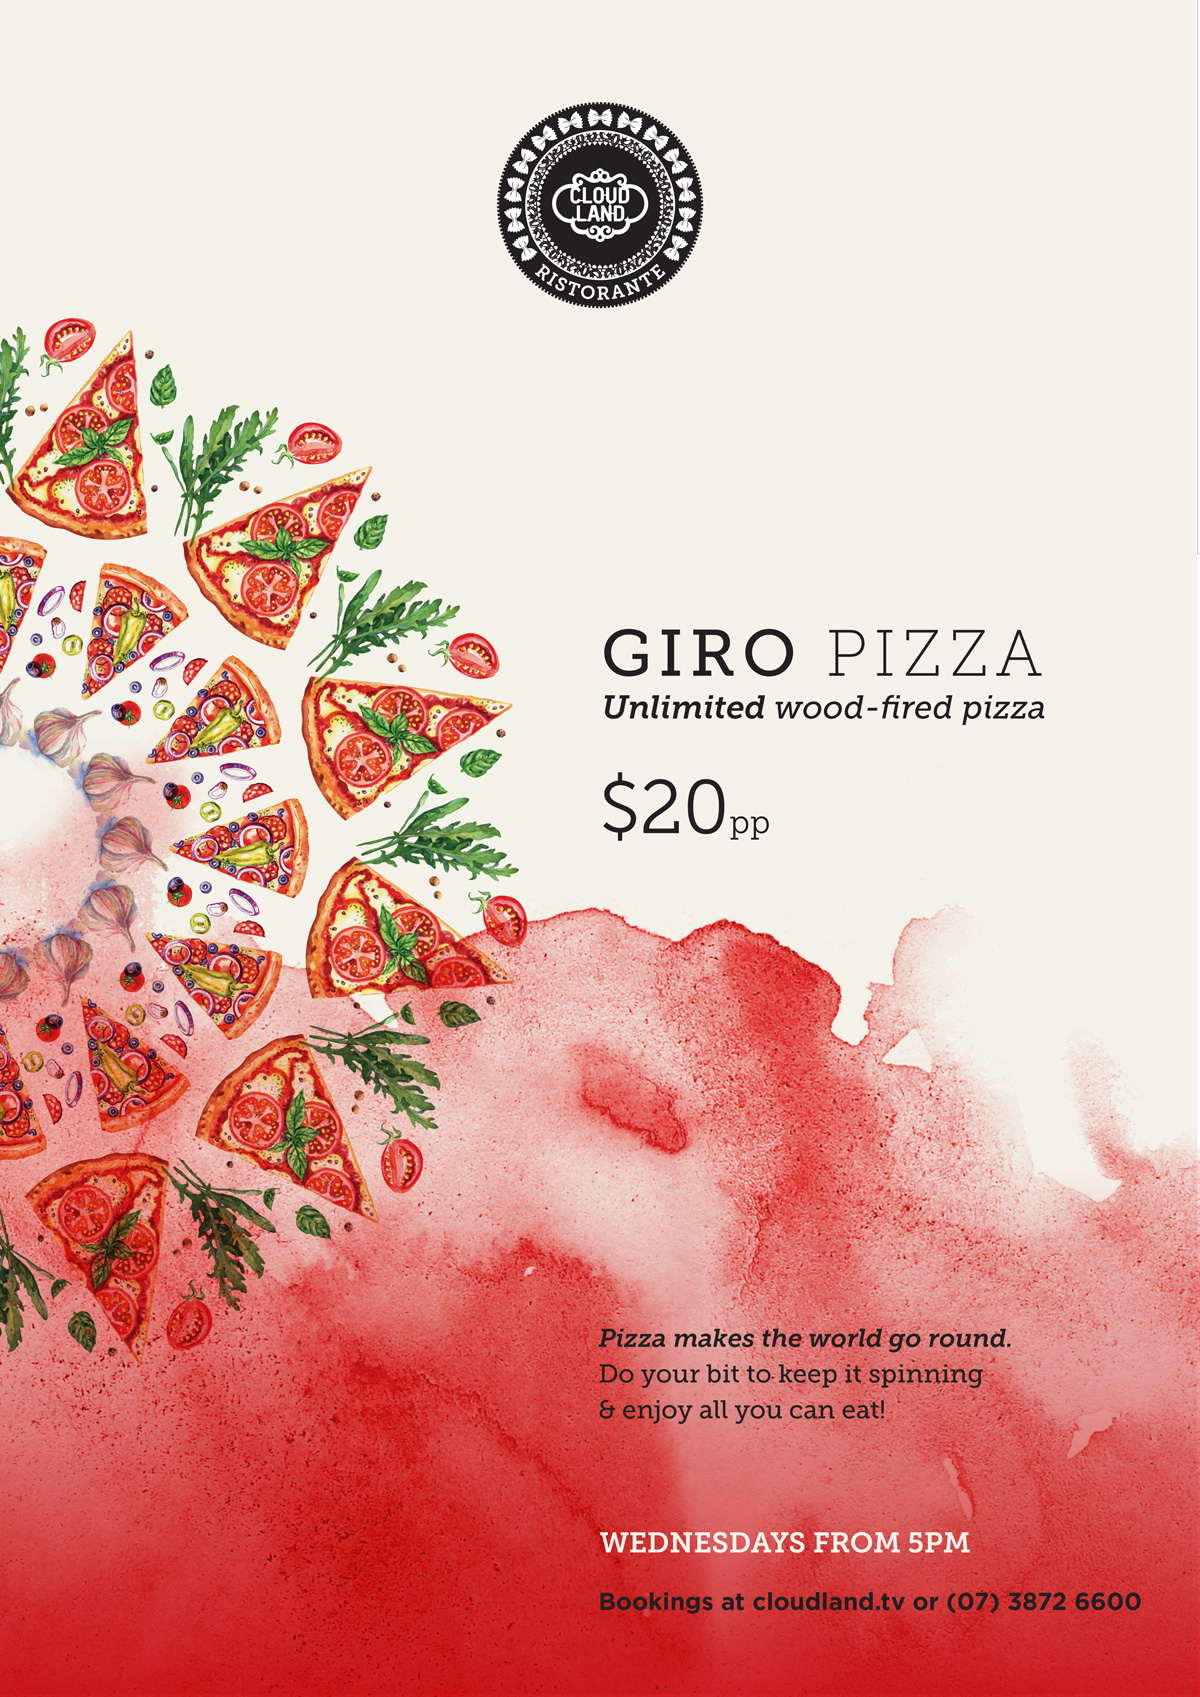 Cloudland Giro Pizza Wednesday